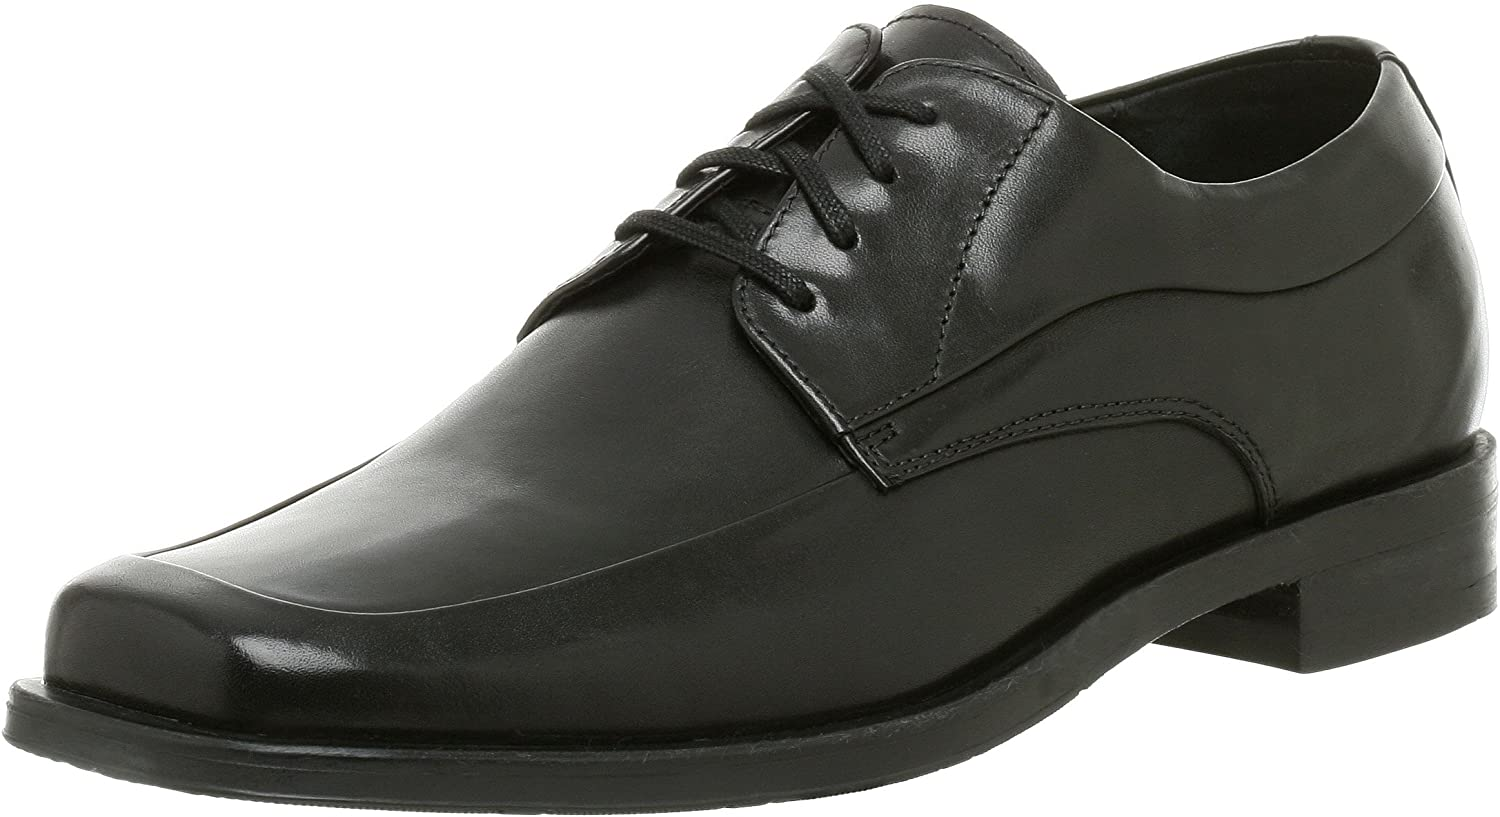 Kenneth Cole REACTION Men's Bank Account Oxford